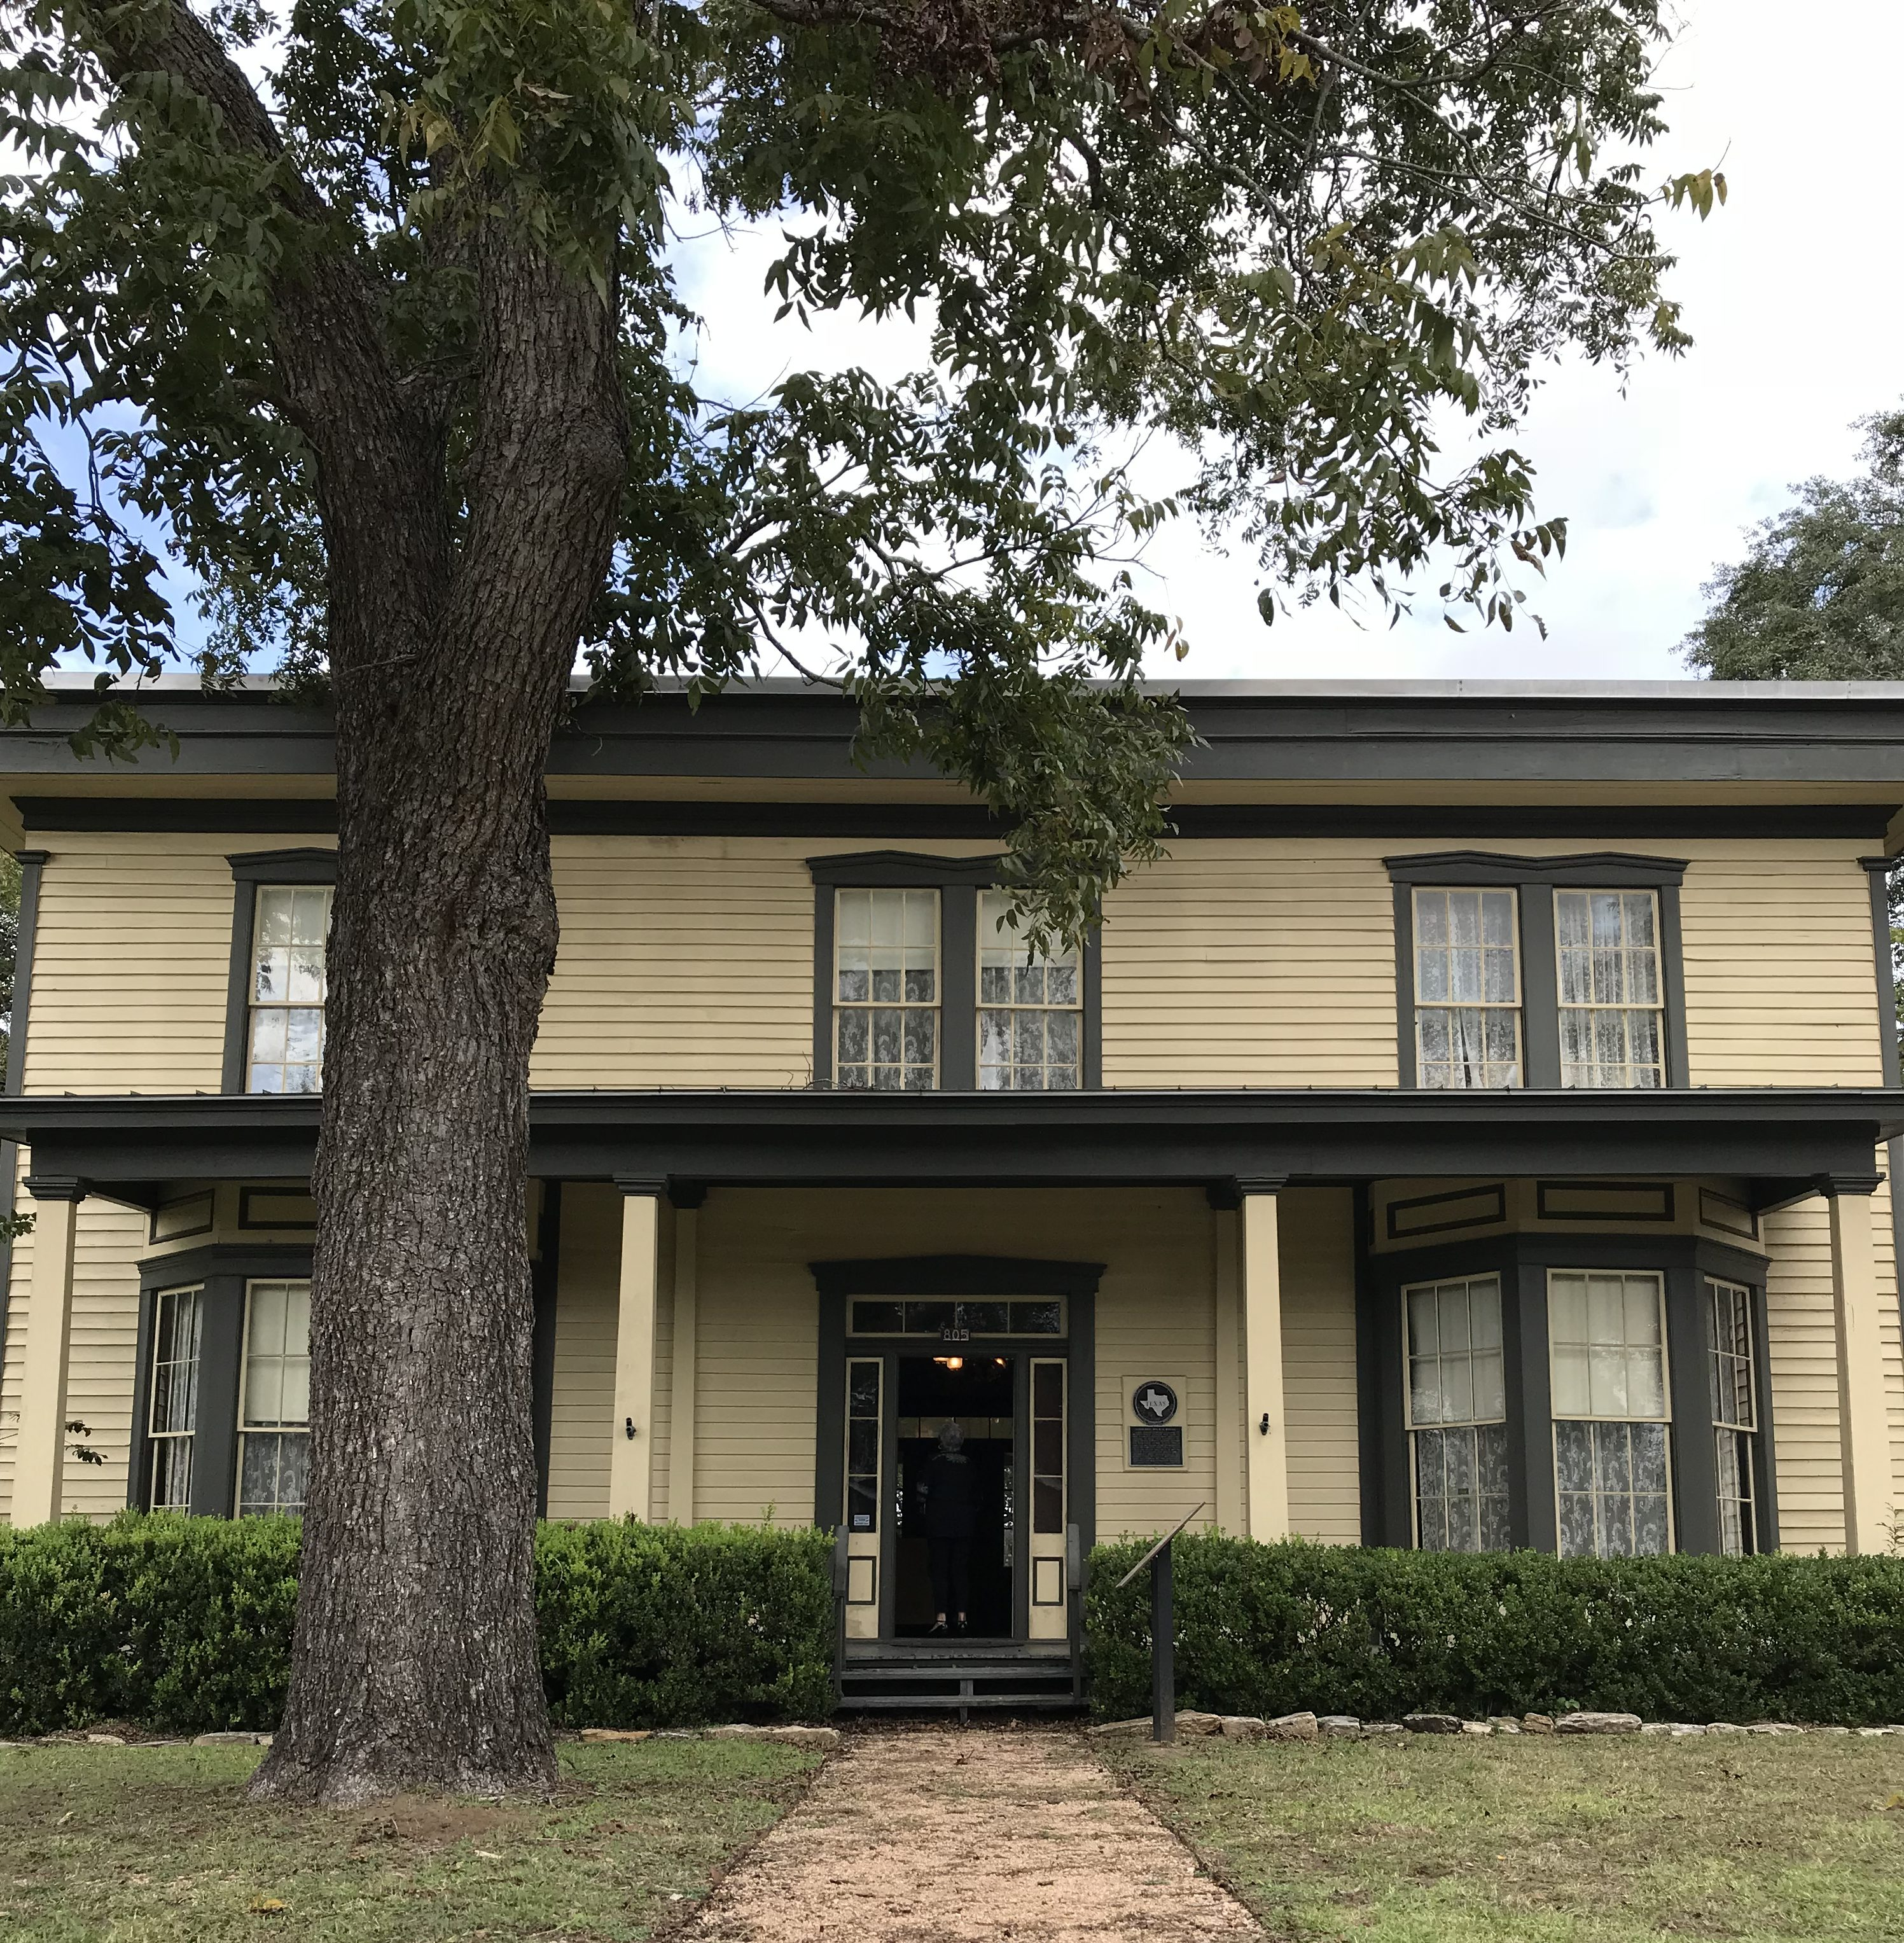 A Lovely Fall Day Trip to Brenham, Texas